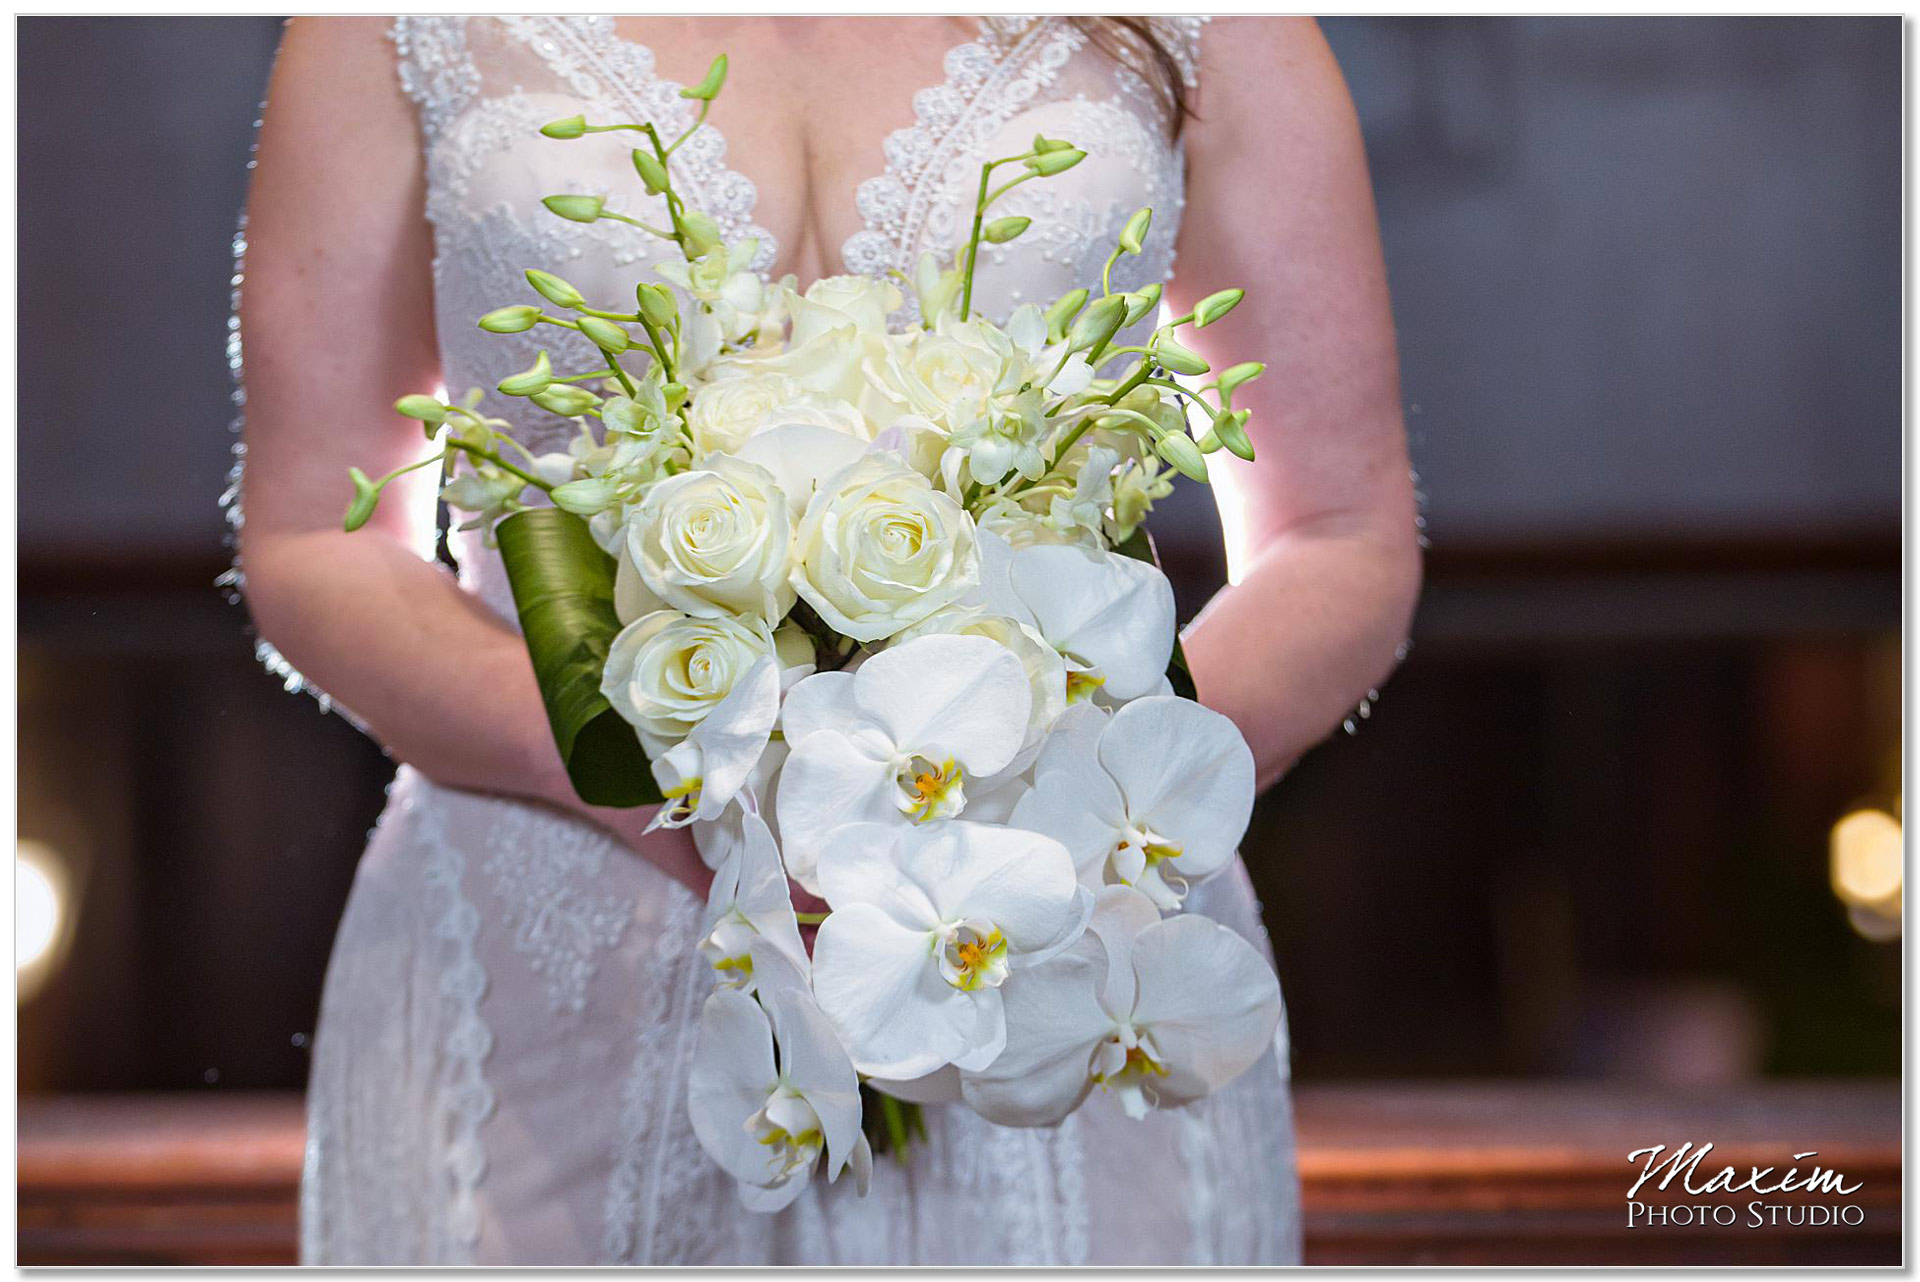 Cincinnati Wedding day flowers